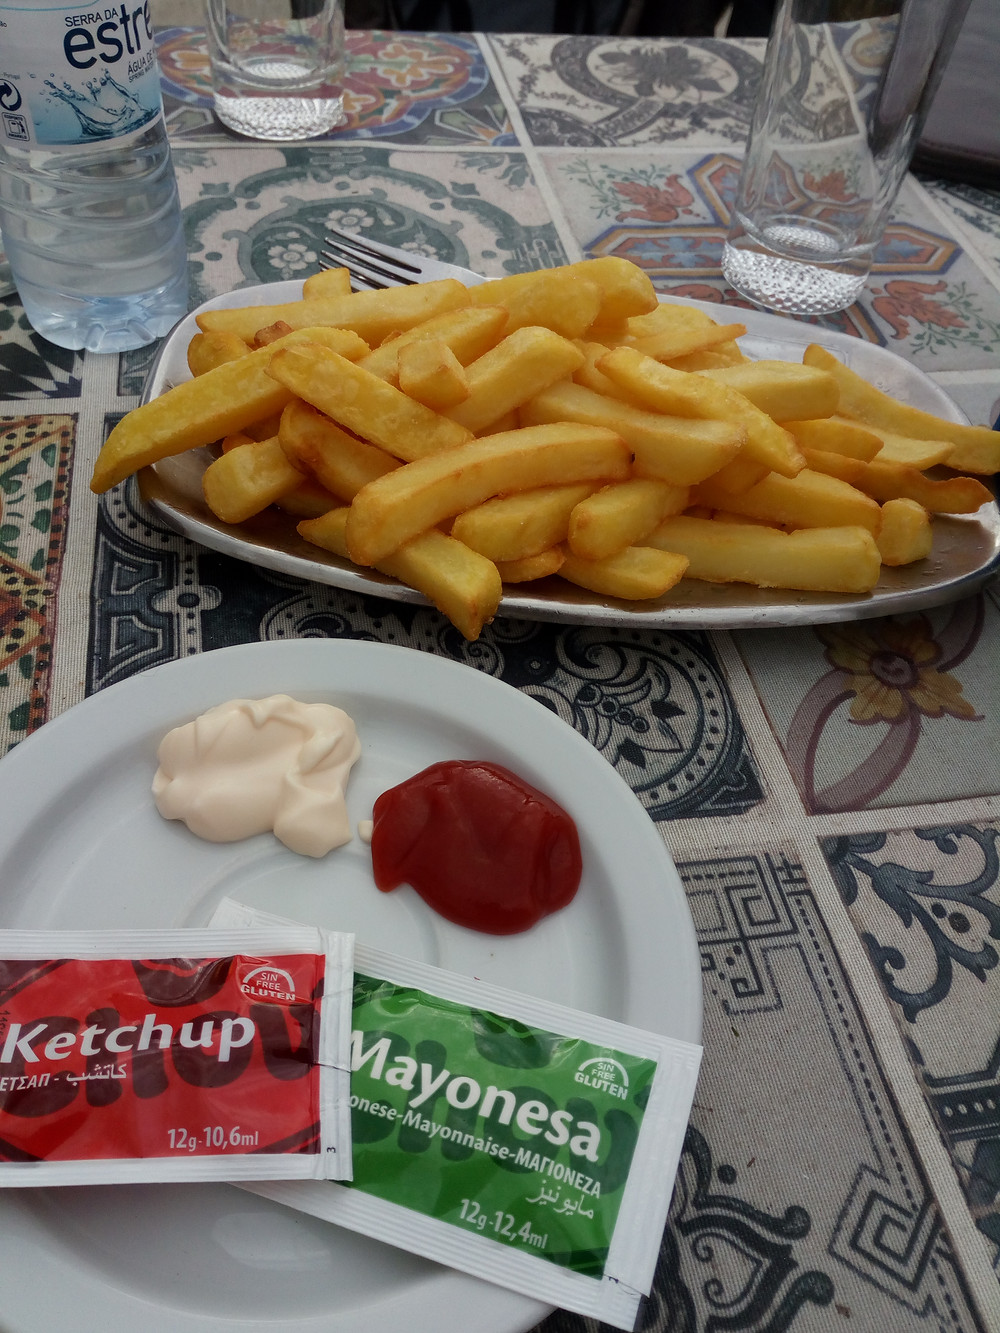 Look at those chips! Even the sauces are gluten-free!